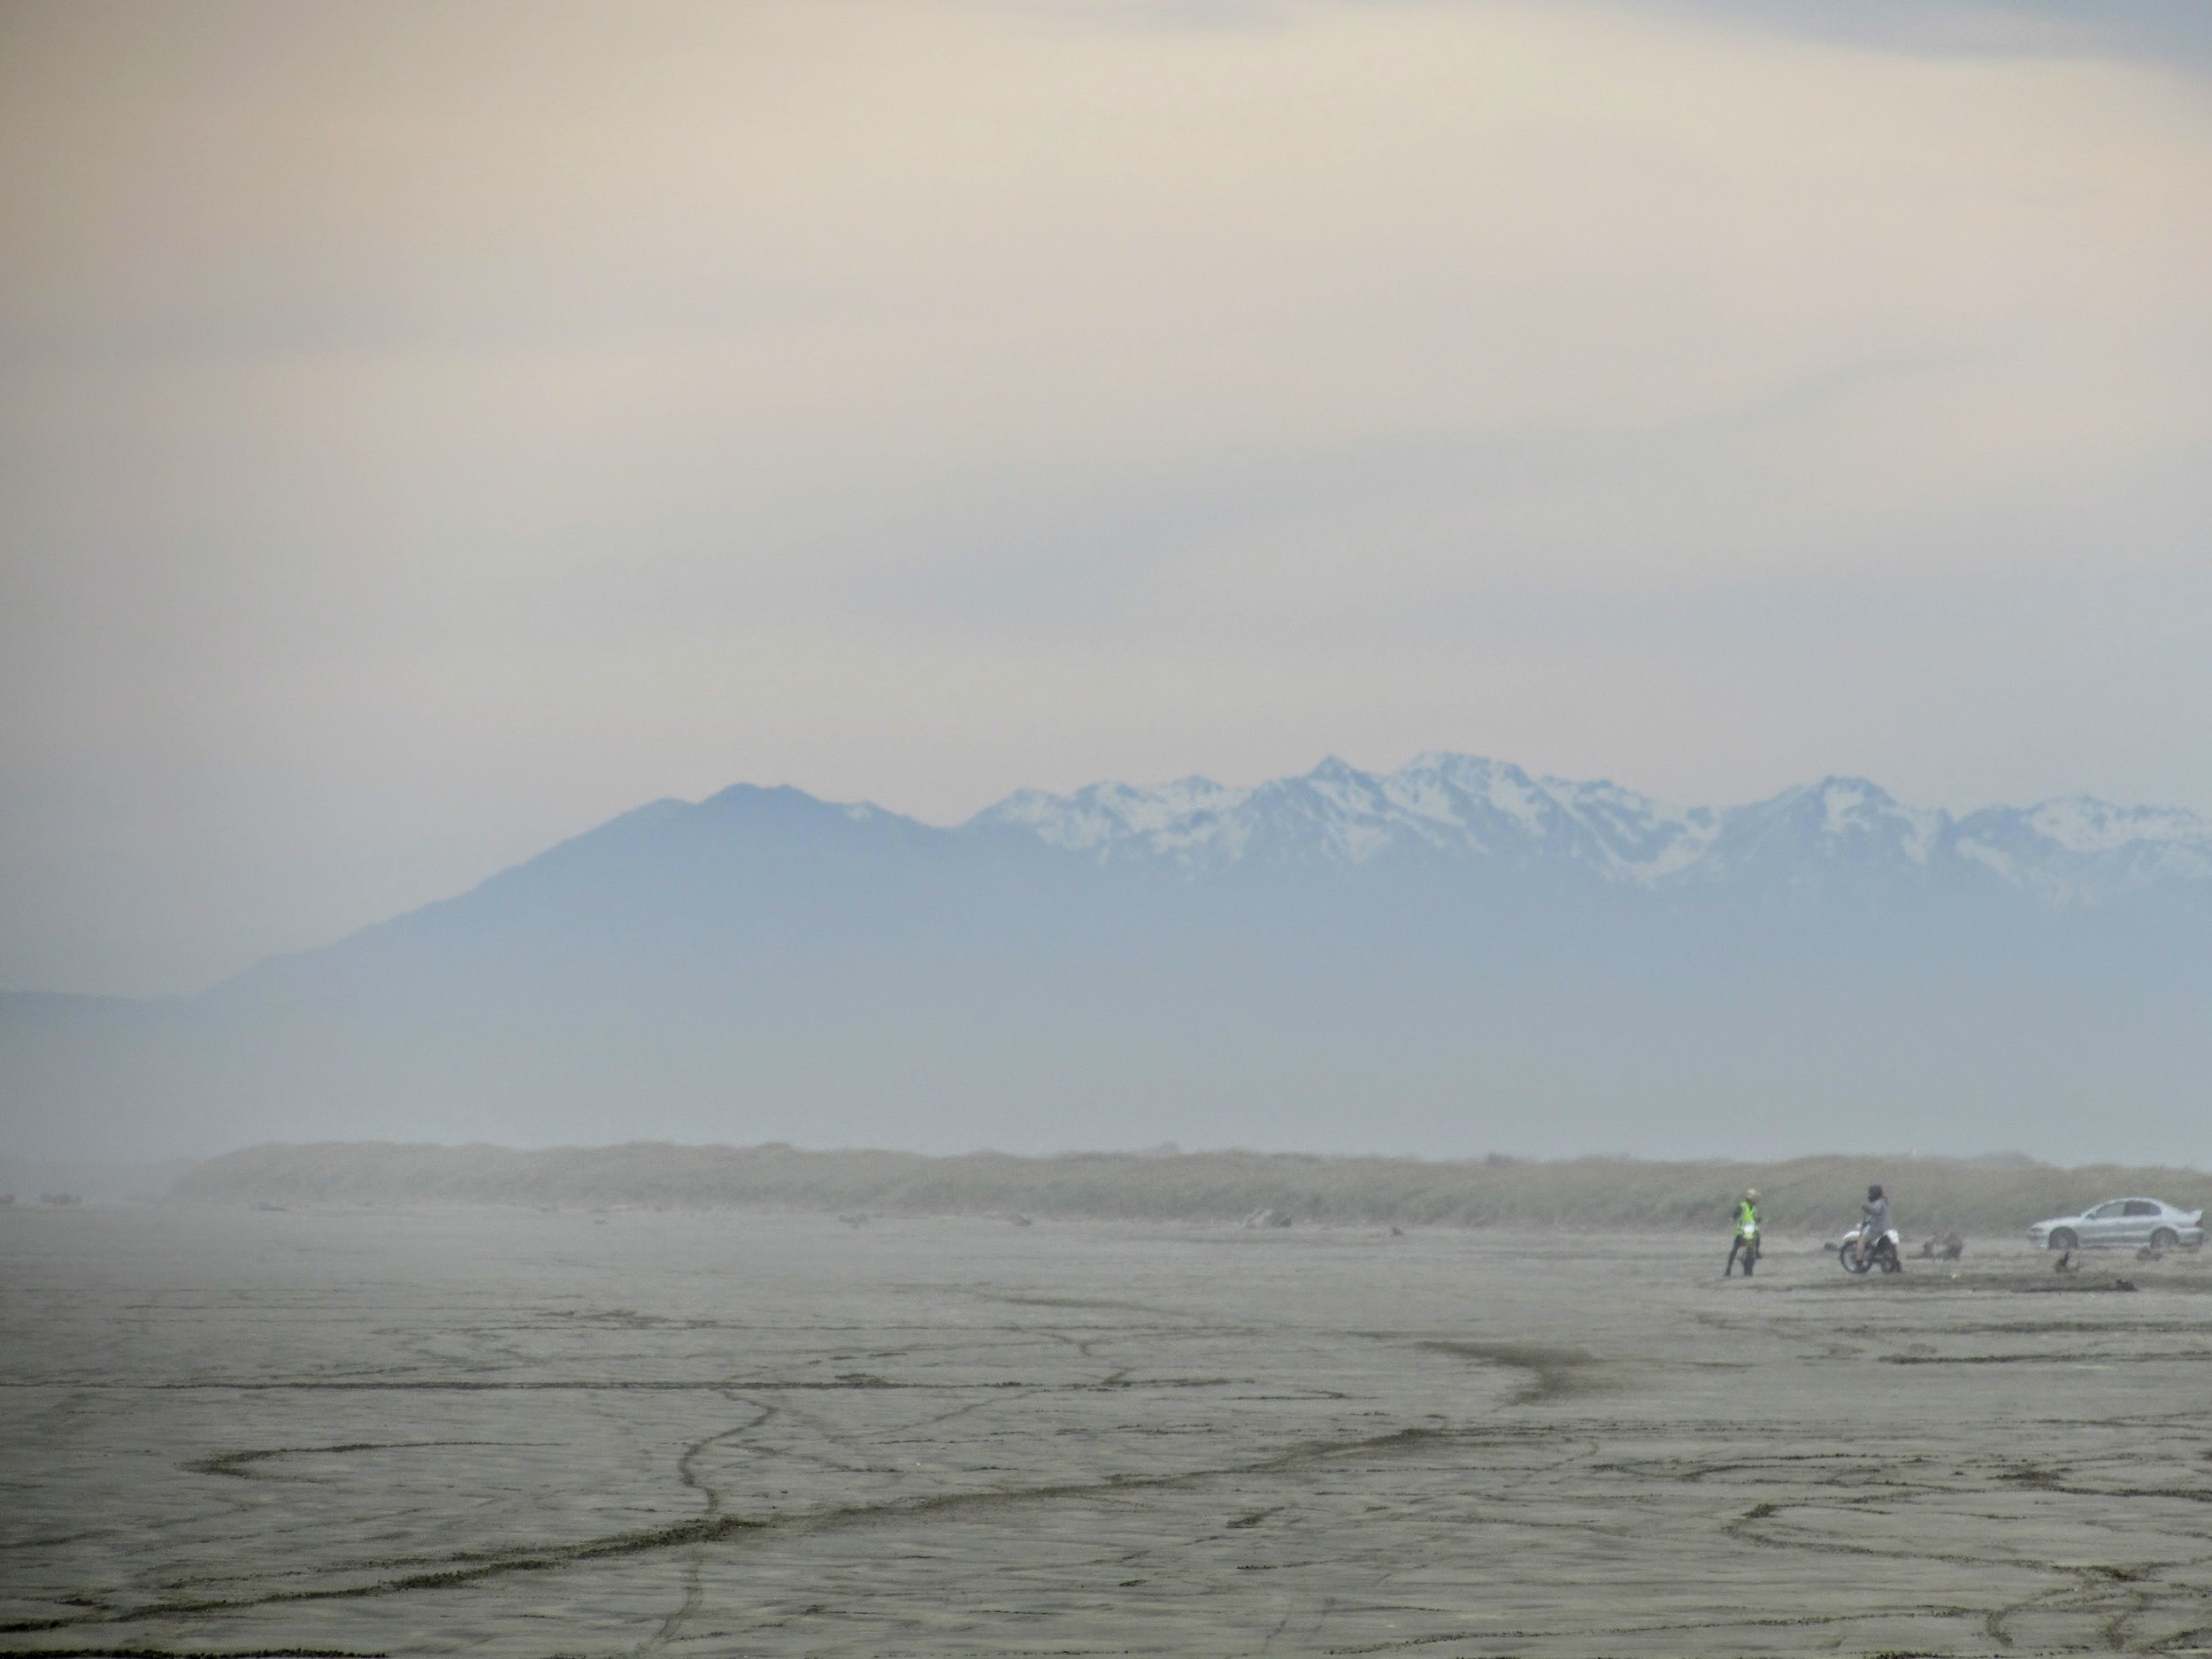 Oreti Beach in Invercargill, with the mountians of Fiordland visible beyond.